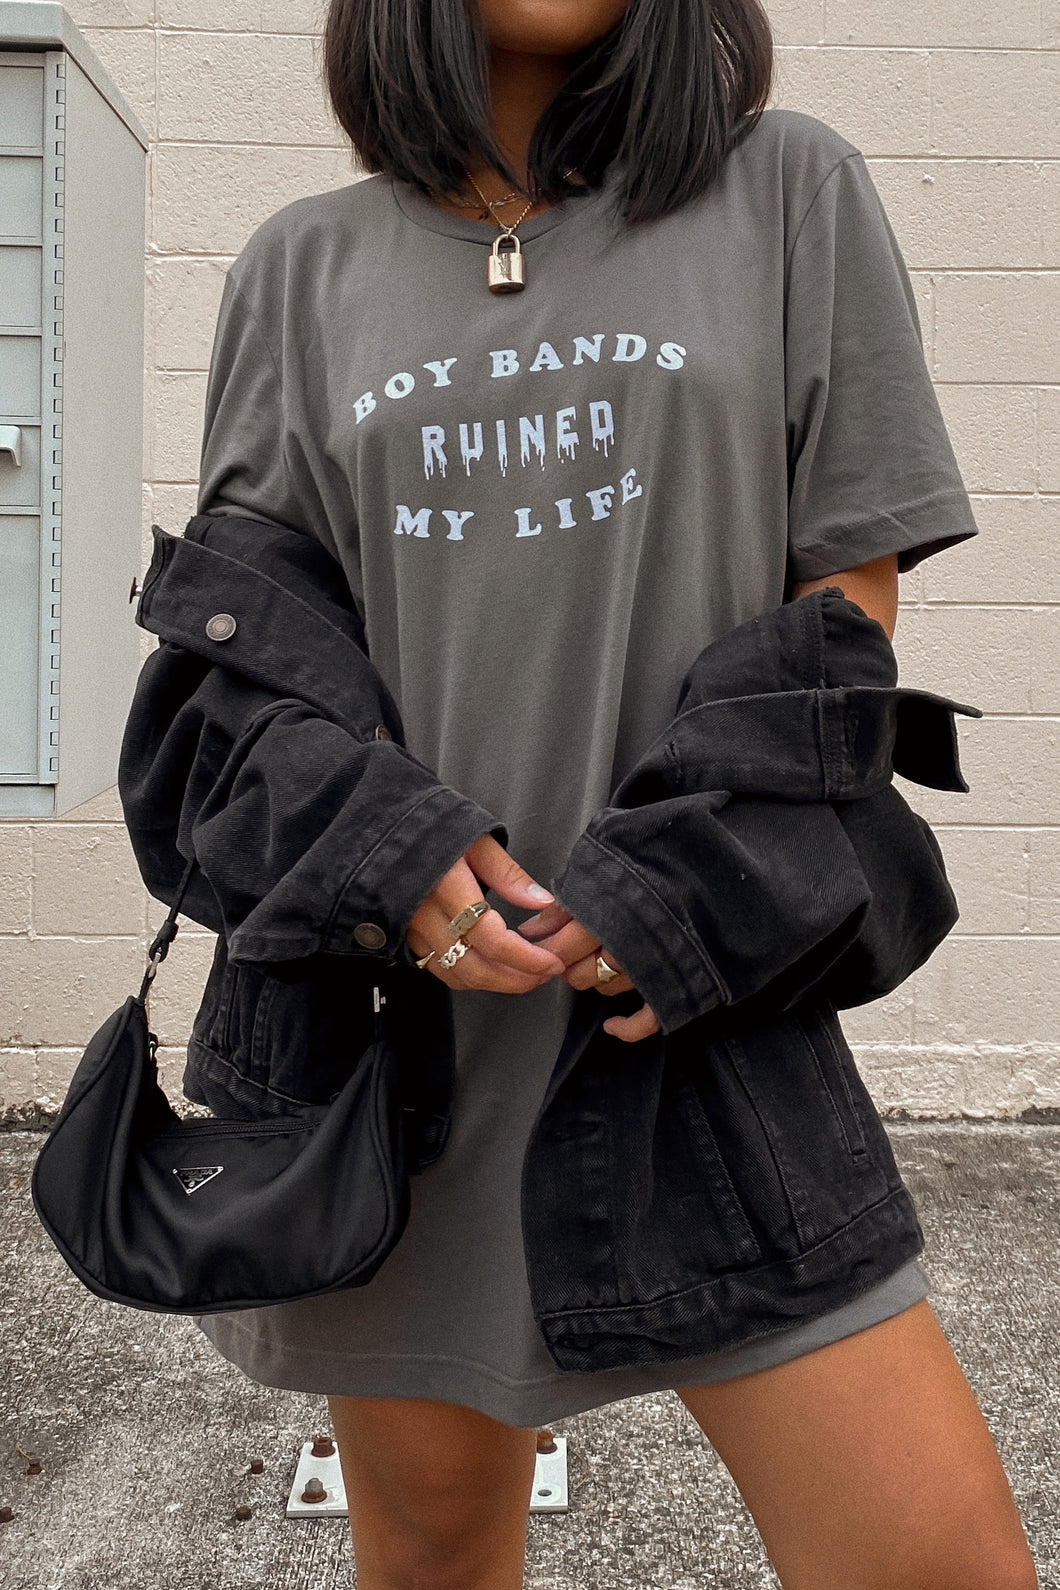 Boy Bands Ruined My Life Tee